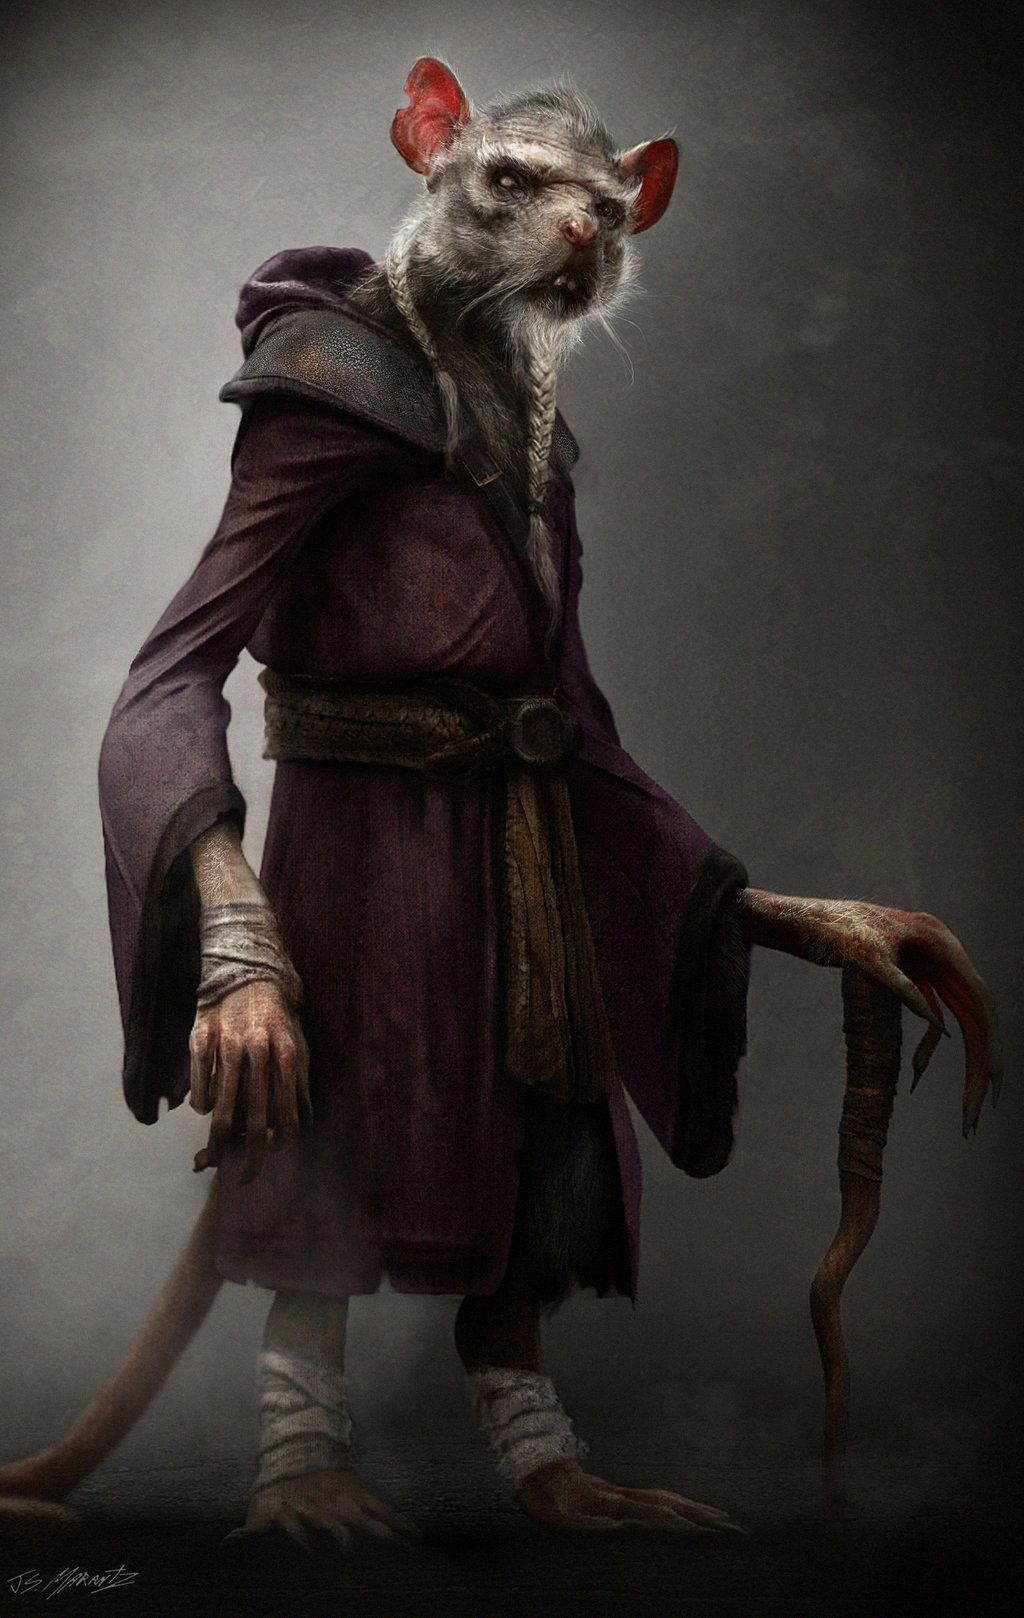 Pictures Of Master Splinter From Ninja Turtles